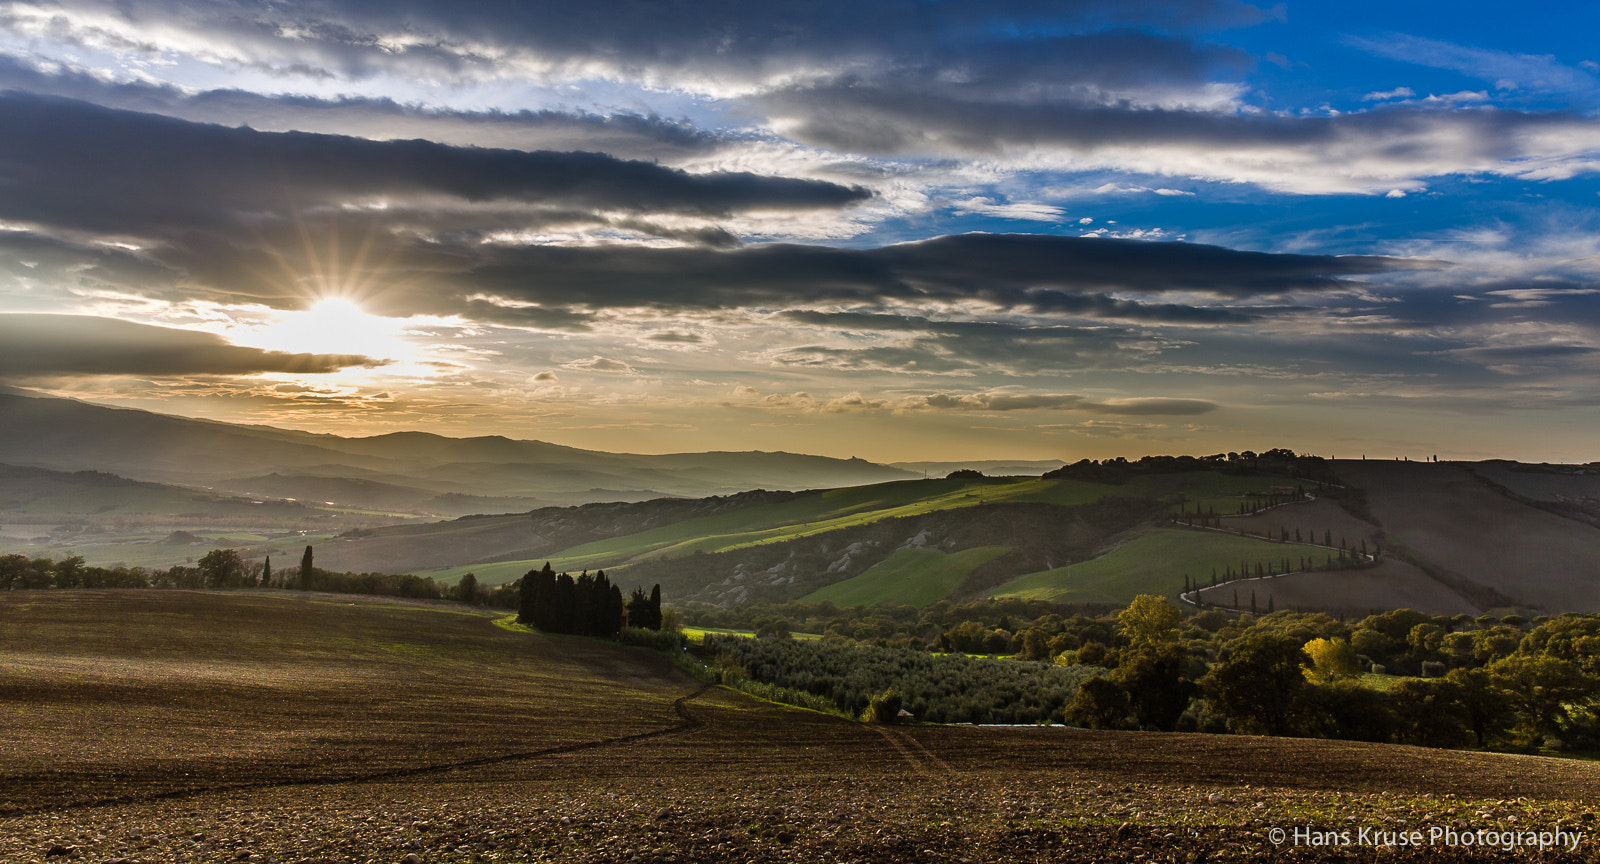 Photograph Tuscany with winding road at late afternoon by Hans Kruse on 500px